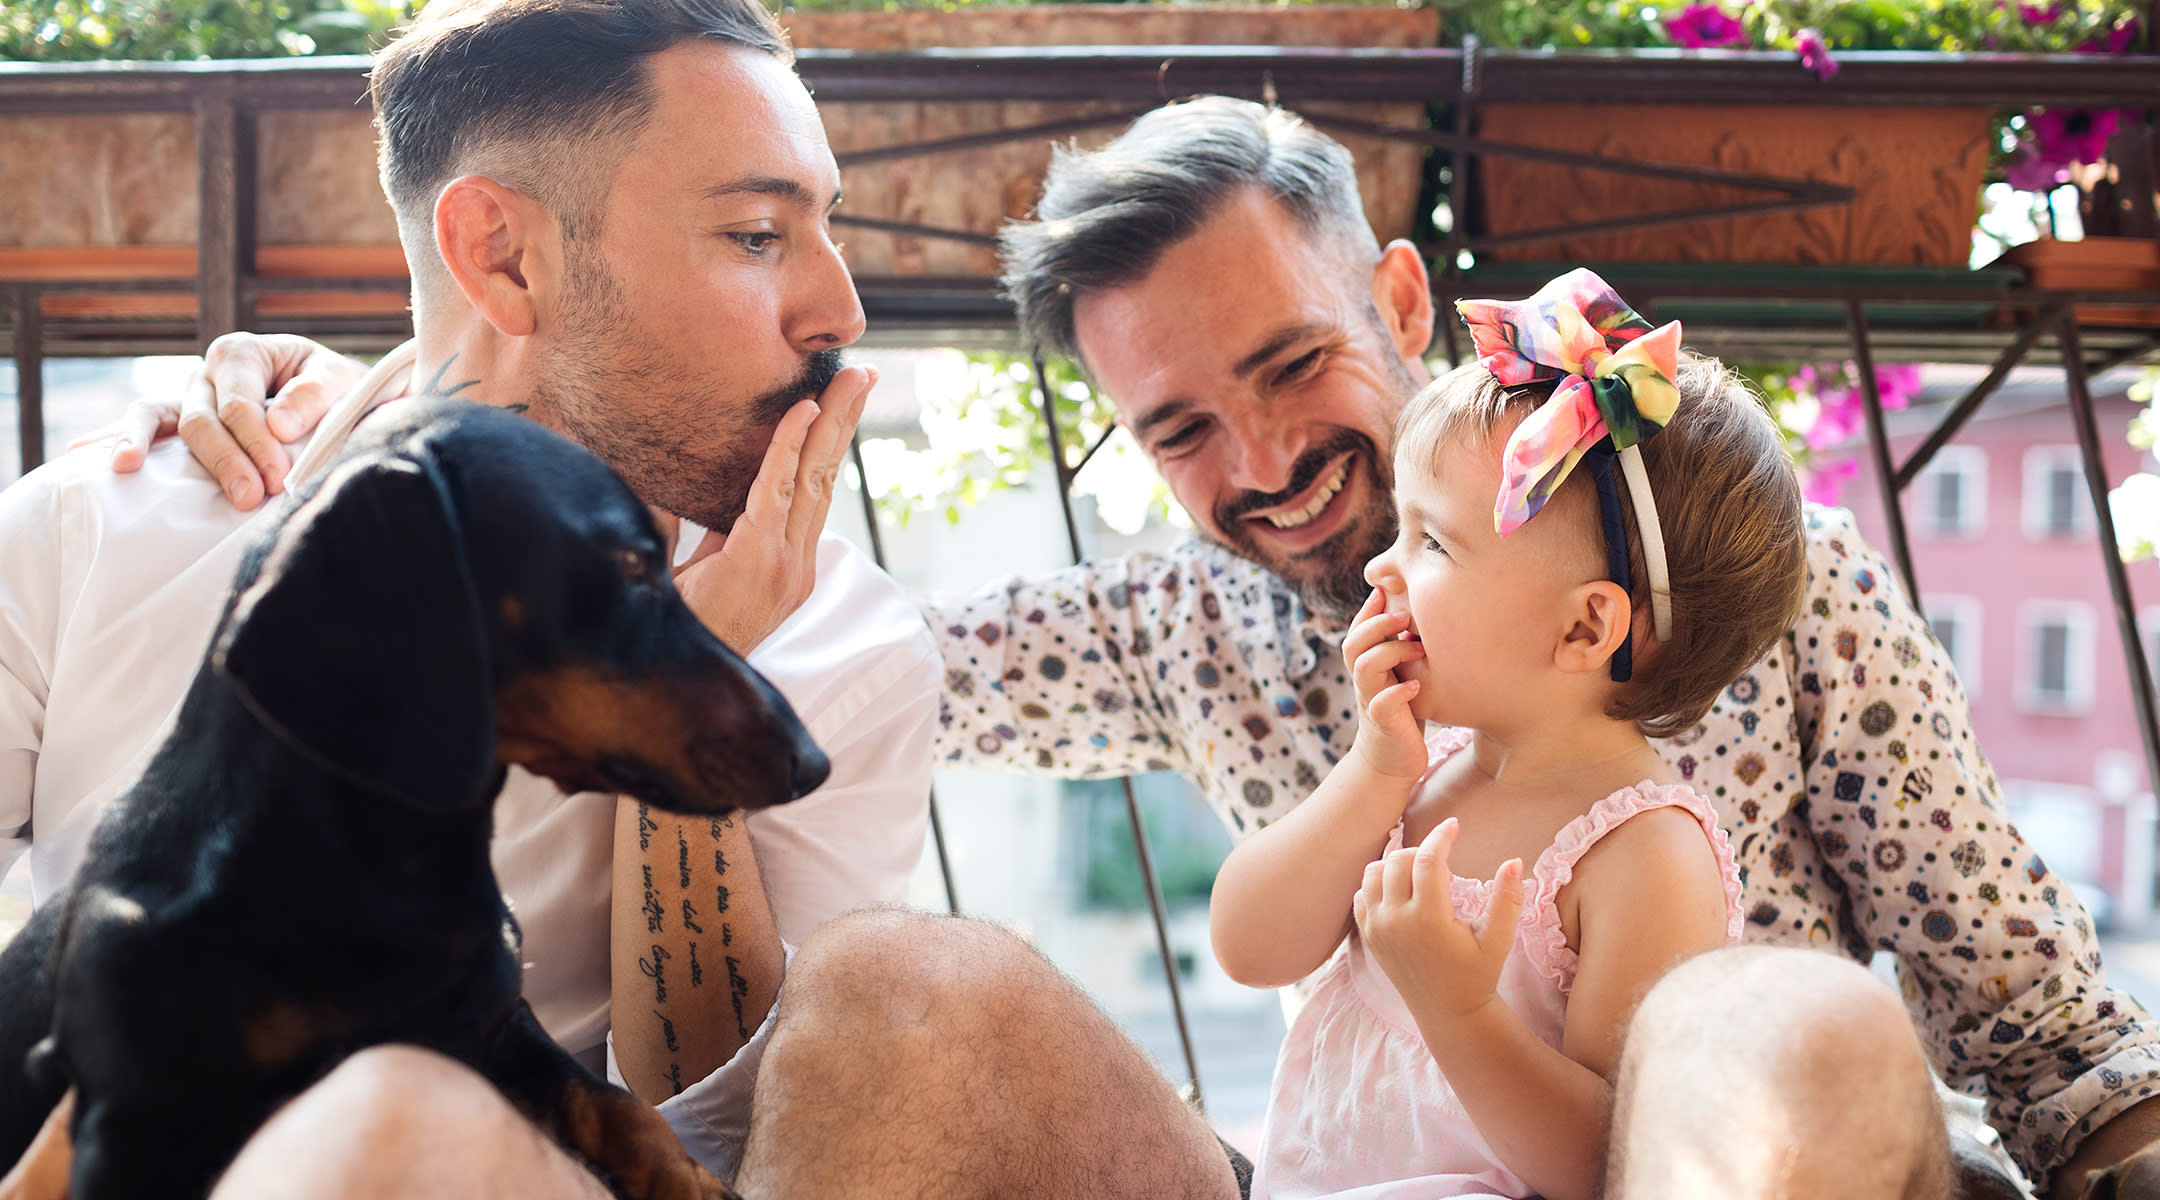 Baby girl wearing headband bow, laughing with her dads